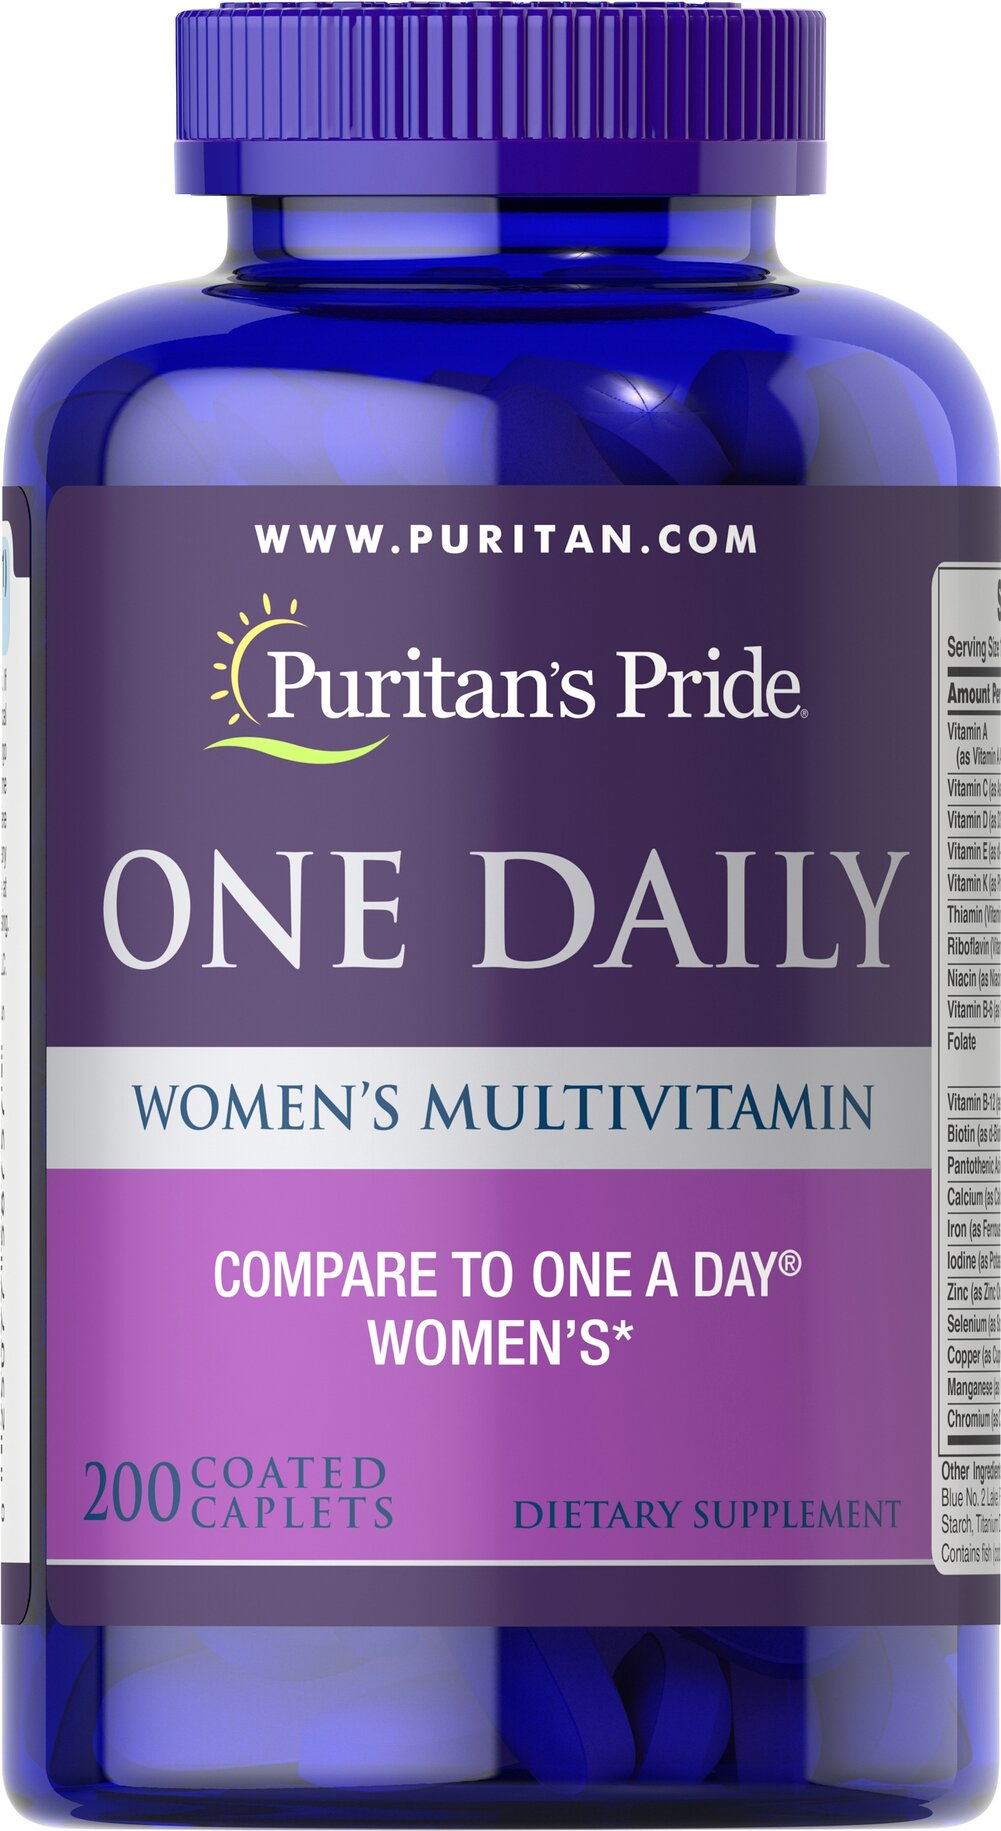 Women's One Daily Multivitamins  200 Caplets  $17.49